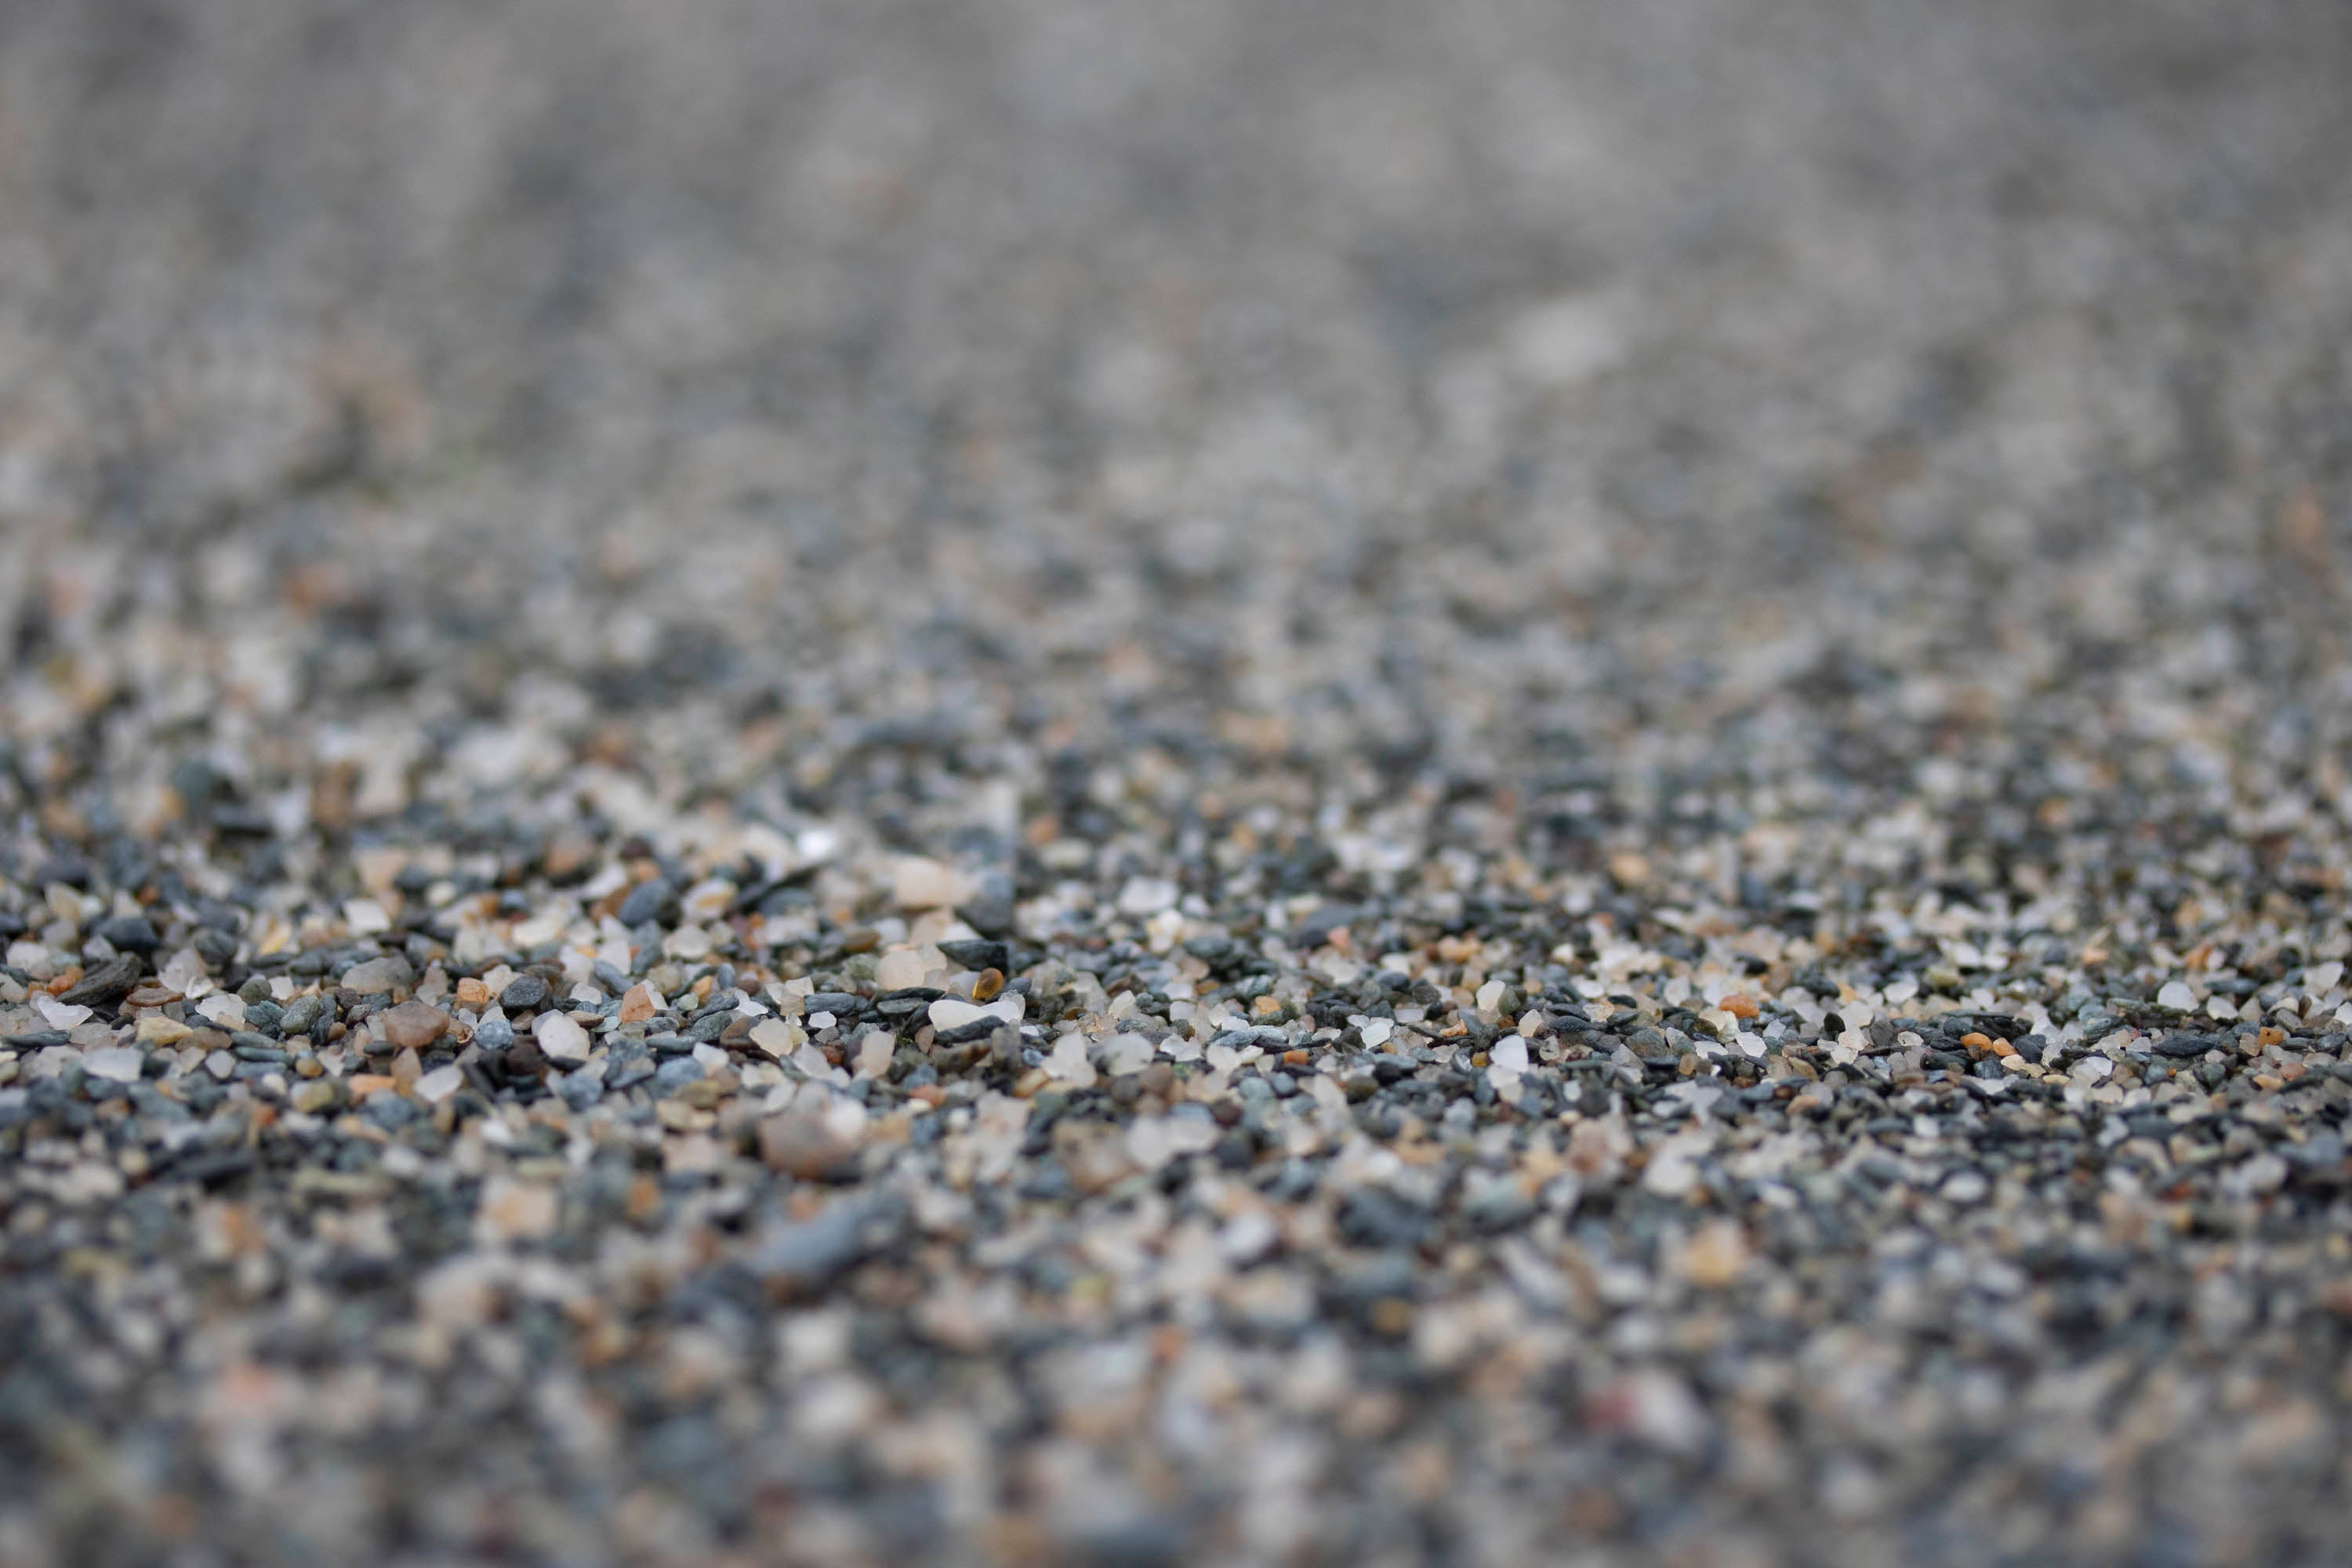 Close up of sand on the beach at Hoswick, Shetland. Large multi-coloured grains of sand.